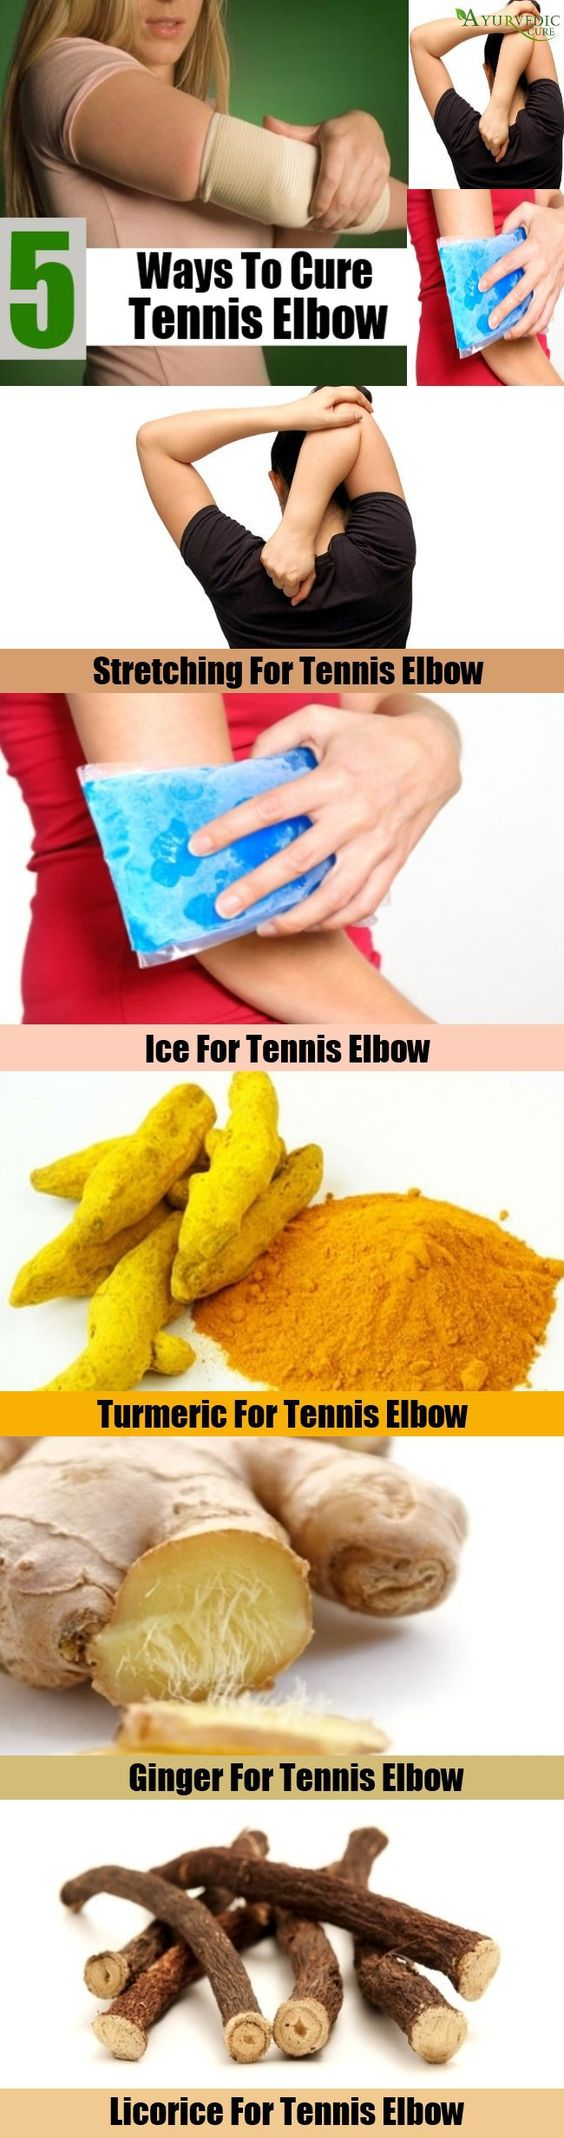 Ways to cure tennis elbow